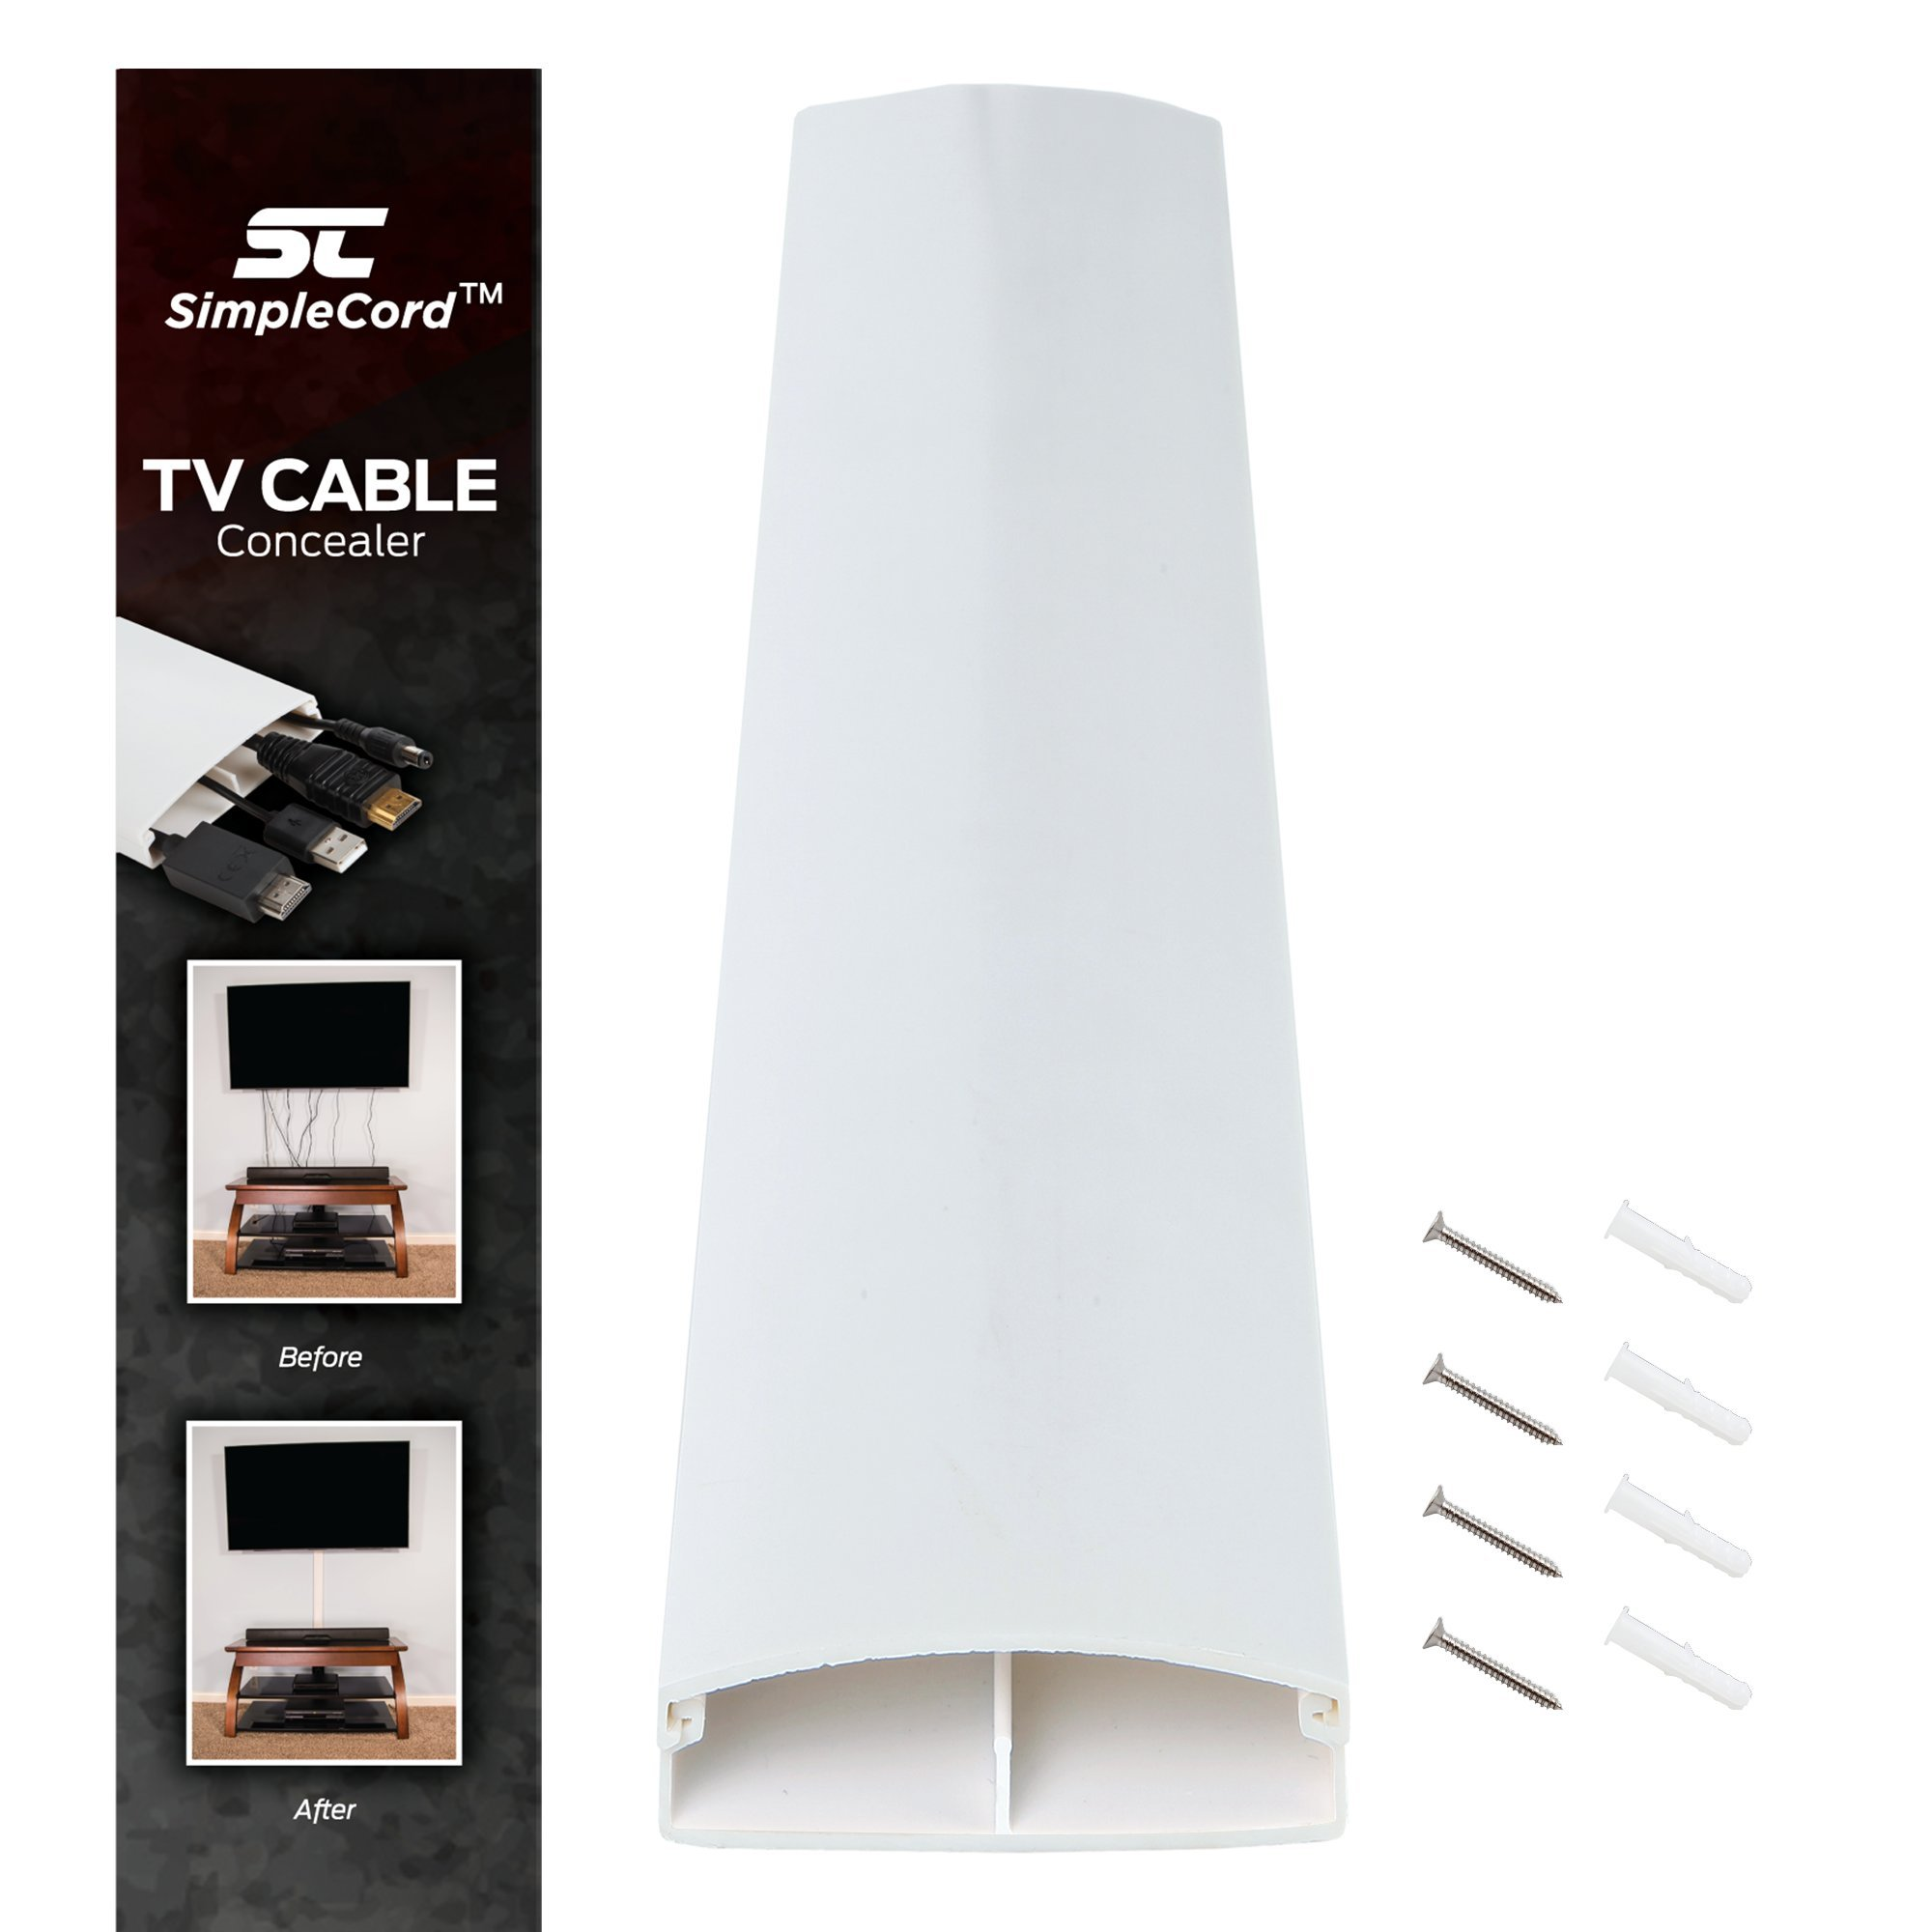 TV Cord Cover Conceals Cables, Cords, or Wires, 32 inch Wall Raceway – SimpleCord Dual Channel Cable Management System